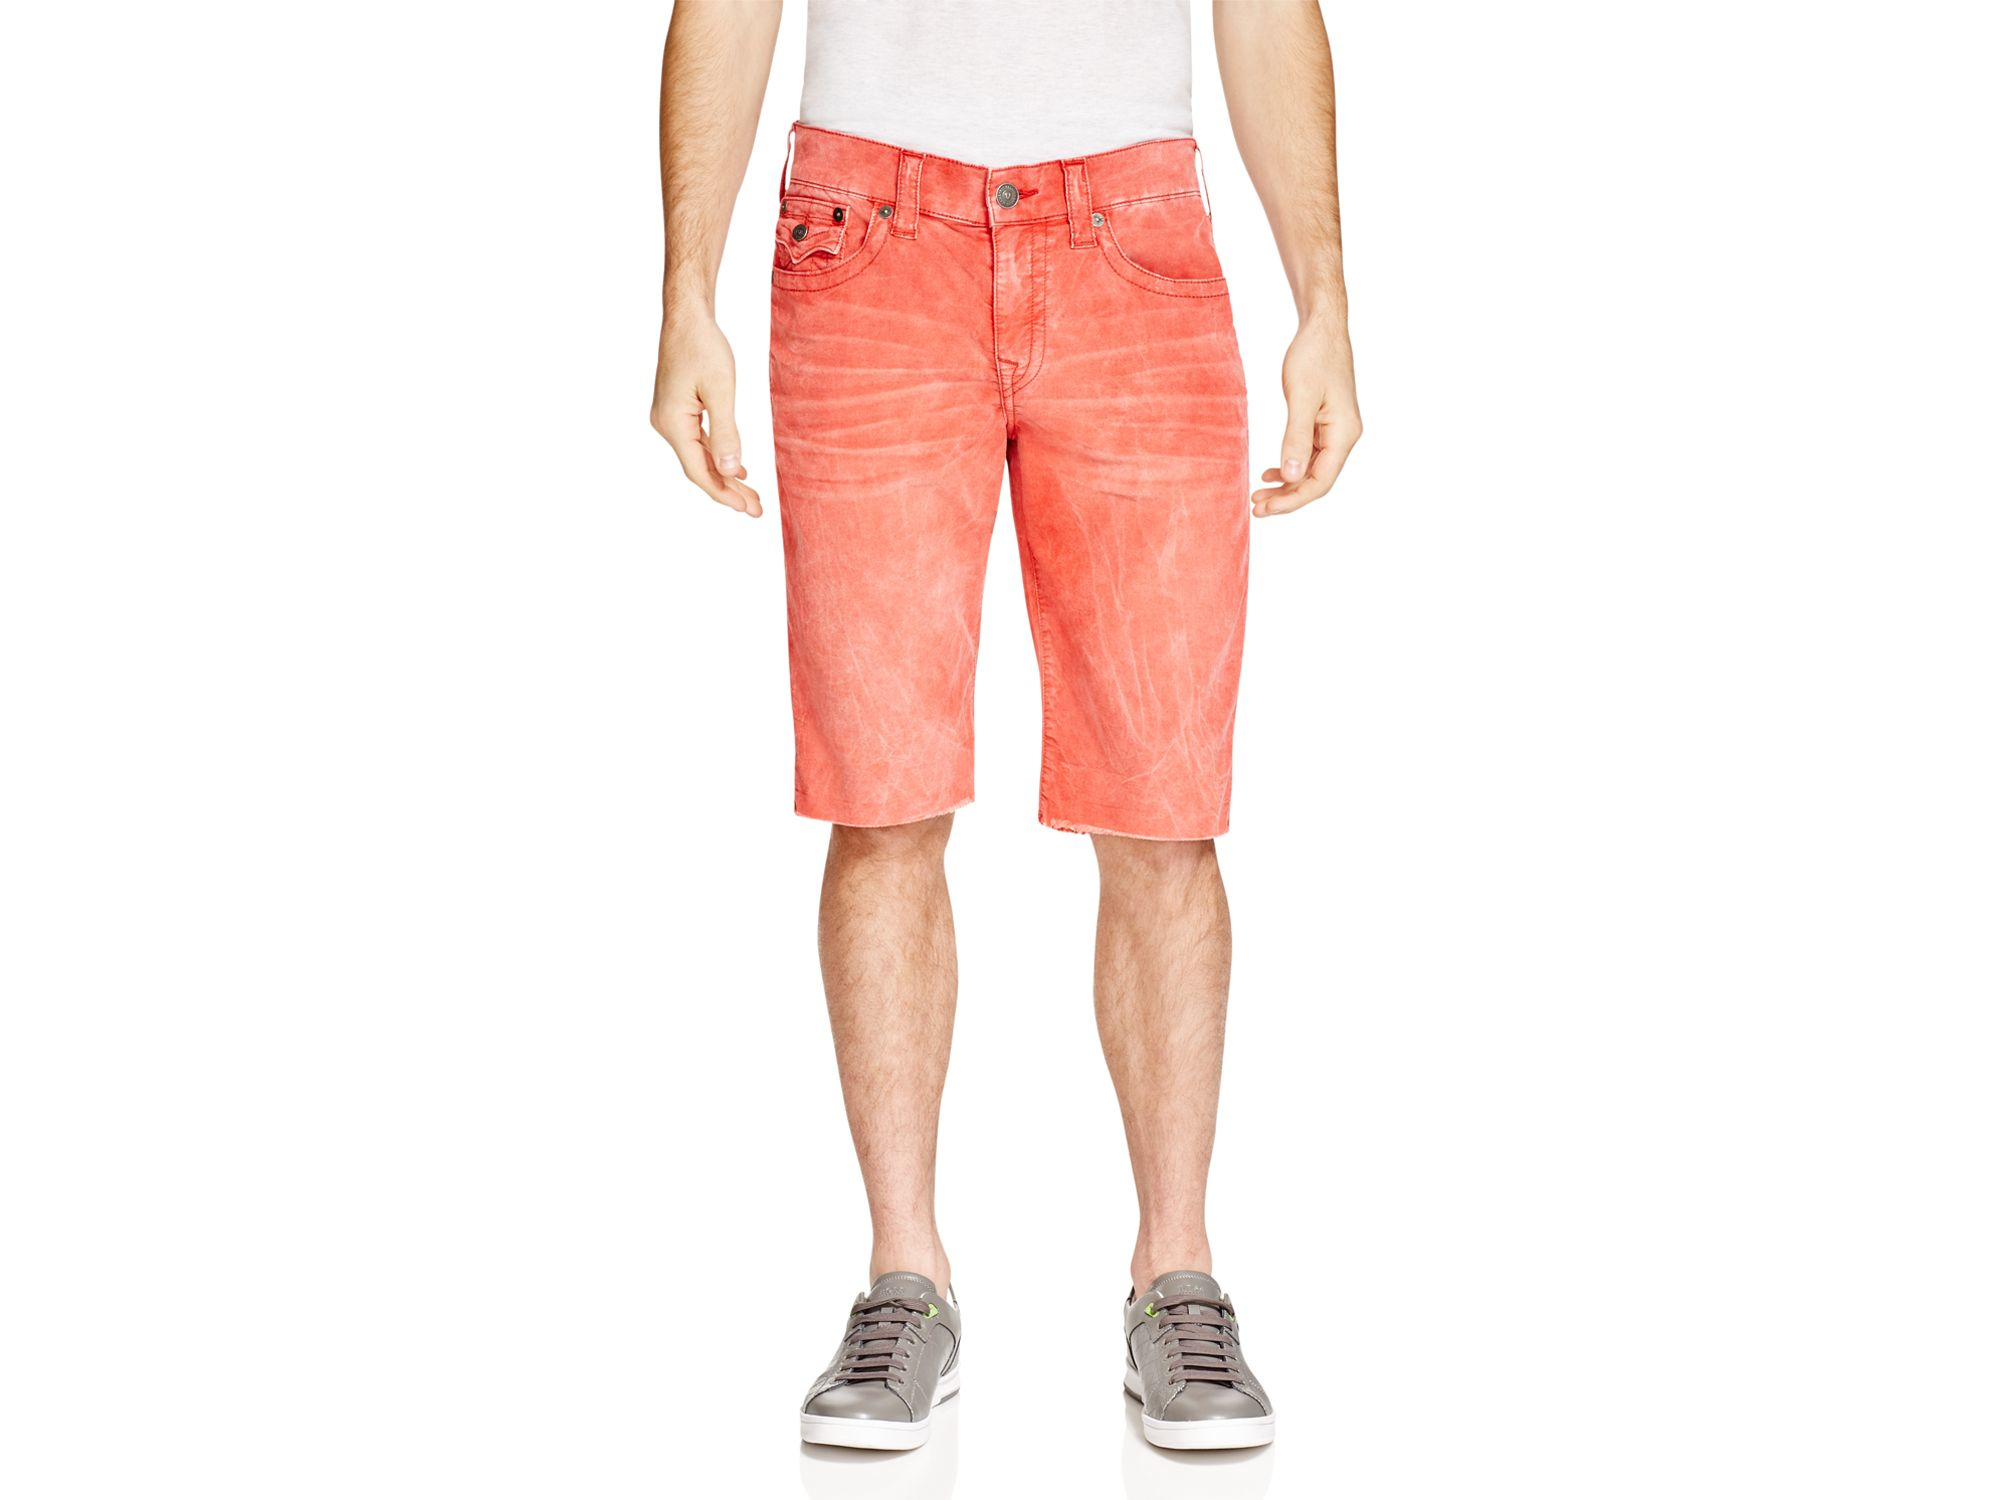 81d760736 True Religion Ricky Relaxed Fit Corduroy Shorts in Red for Men - Lyst